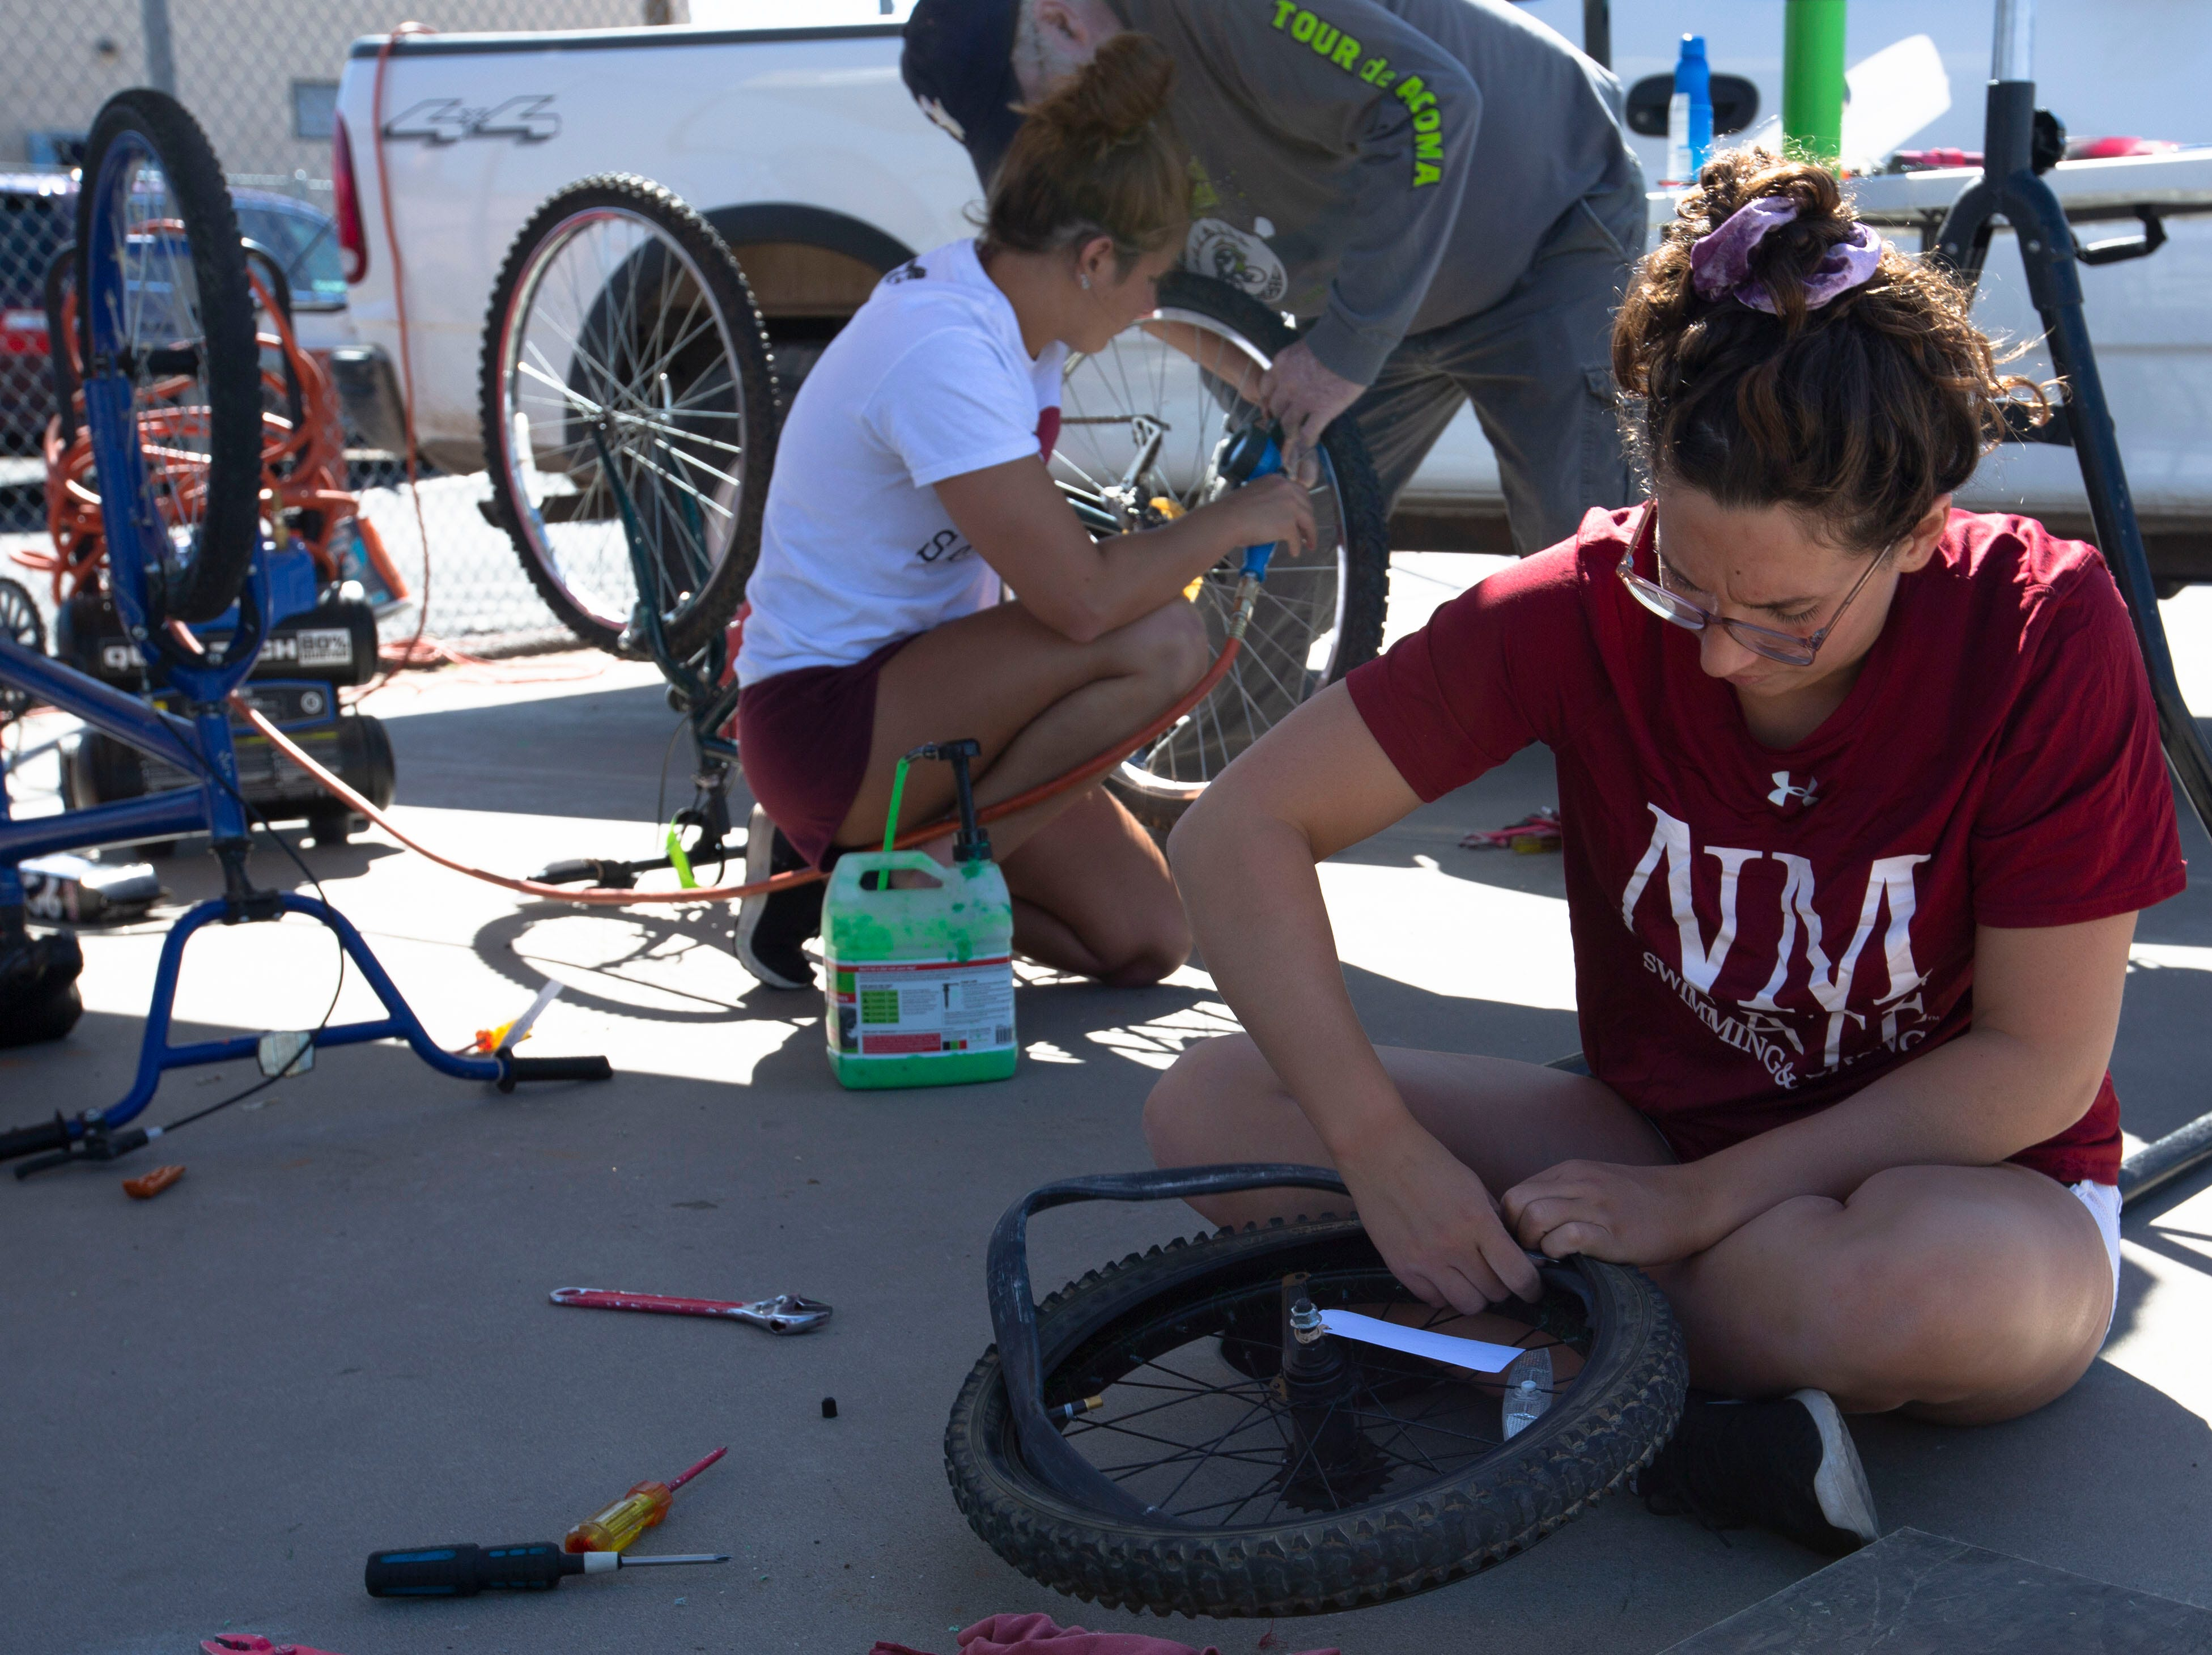 A member of the New Mexico State swim team, Moana Houde-Camirand  fixes a bike tire on Saturday, April 27, 2019. Houde-Camirand said she was volunteering at the Family Bike Fiesta to give back to the community.